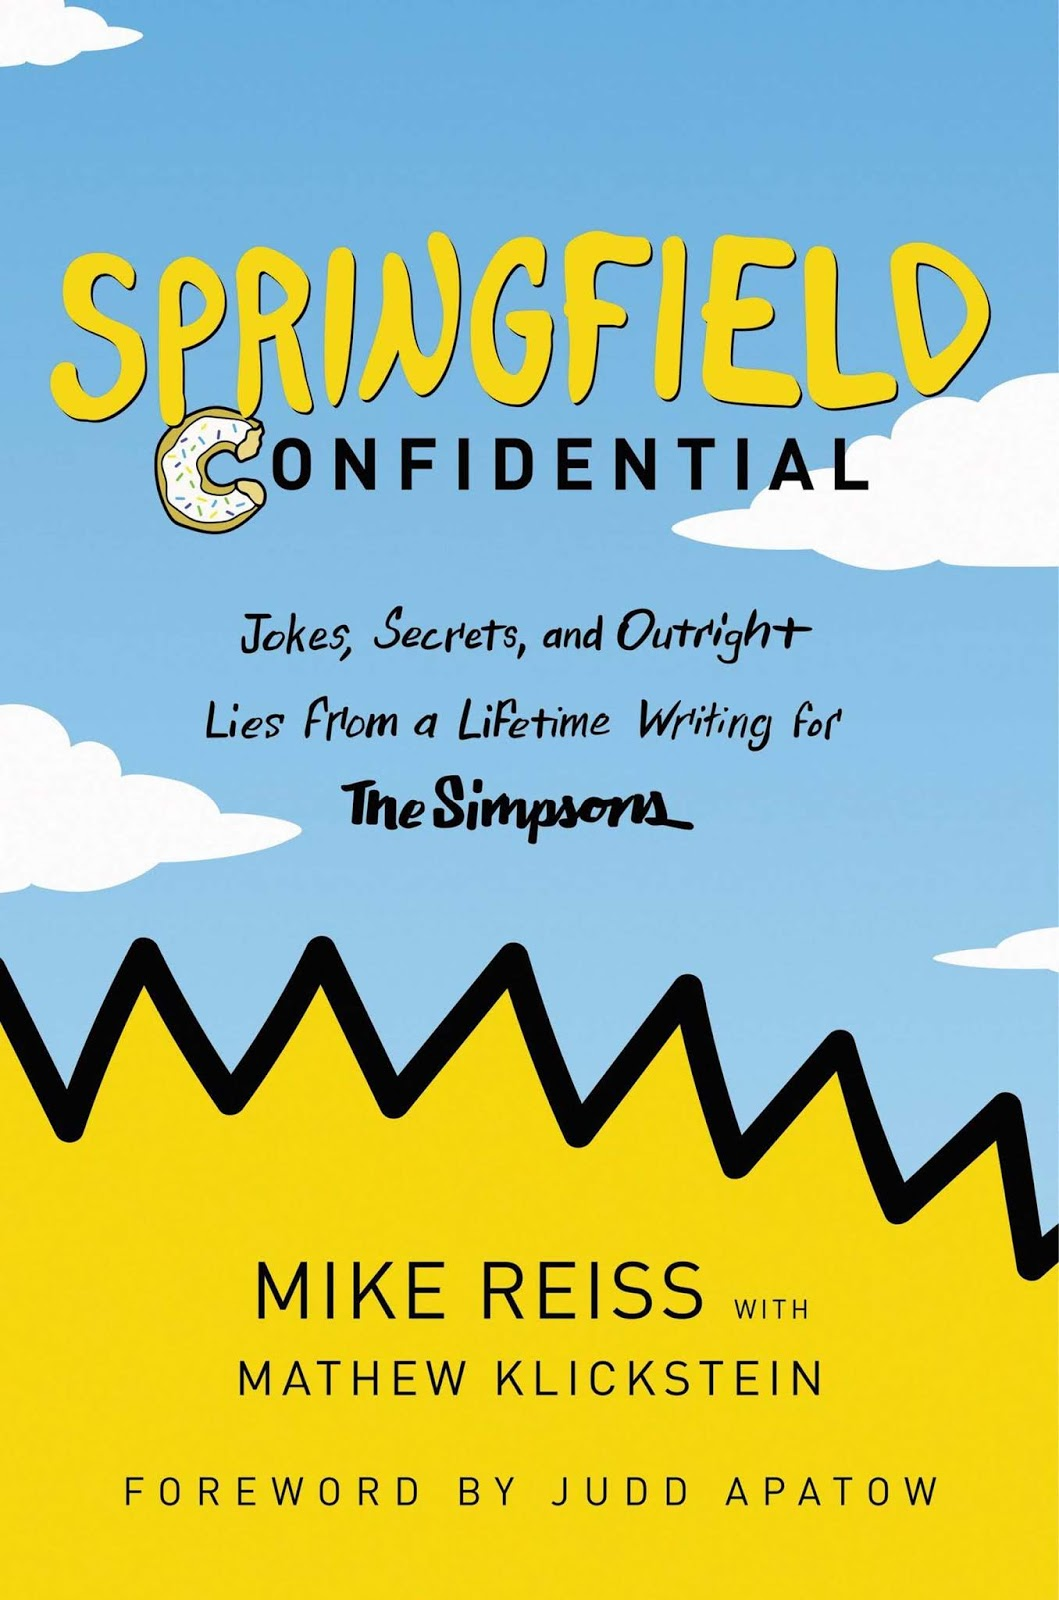 The cover of Simpsons Confidential.